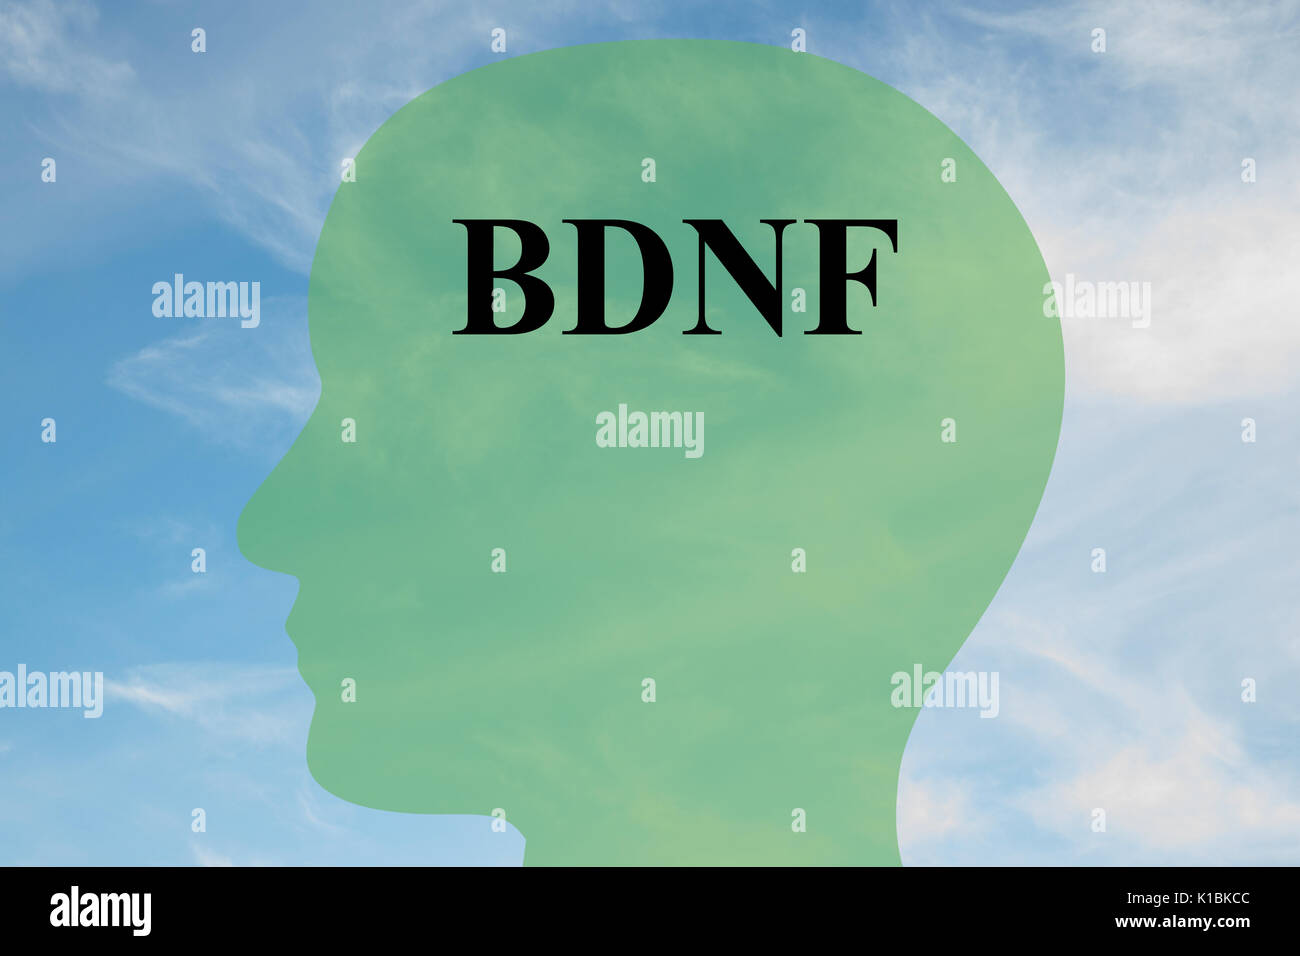 Render illustration of BDNF title on head silhouette, with cloudy sky as a background - Stock Image